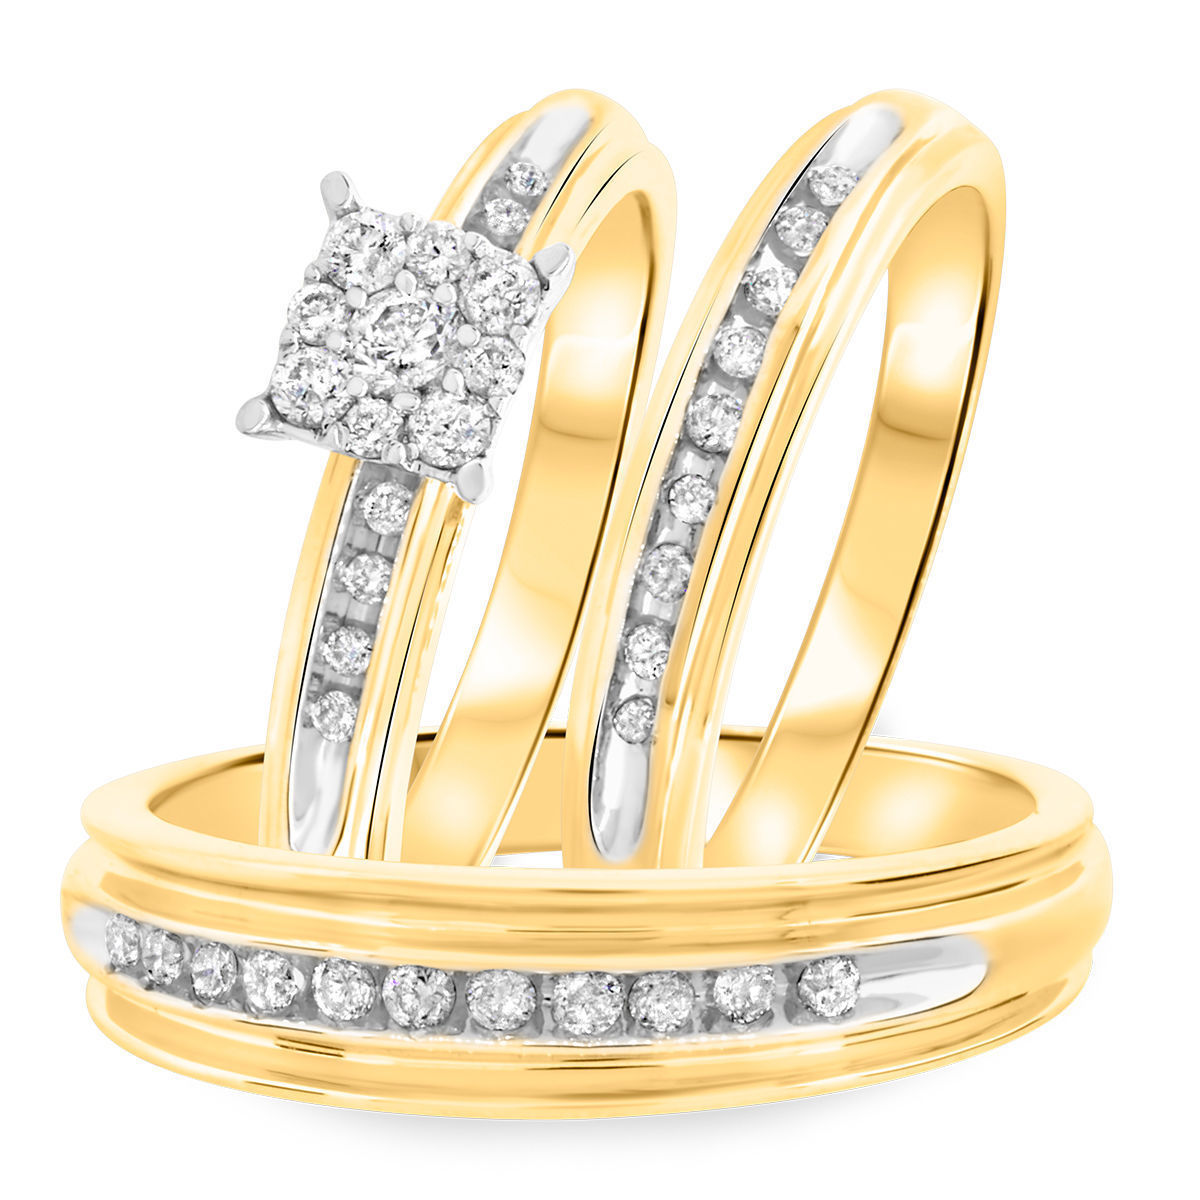 Primary image for Round Cut CZ 14k Gold Plated 925 Silver Trio Wedding Ring Sets & Free Shipping